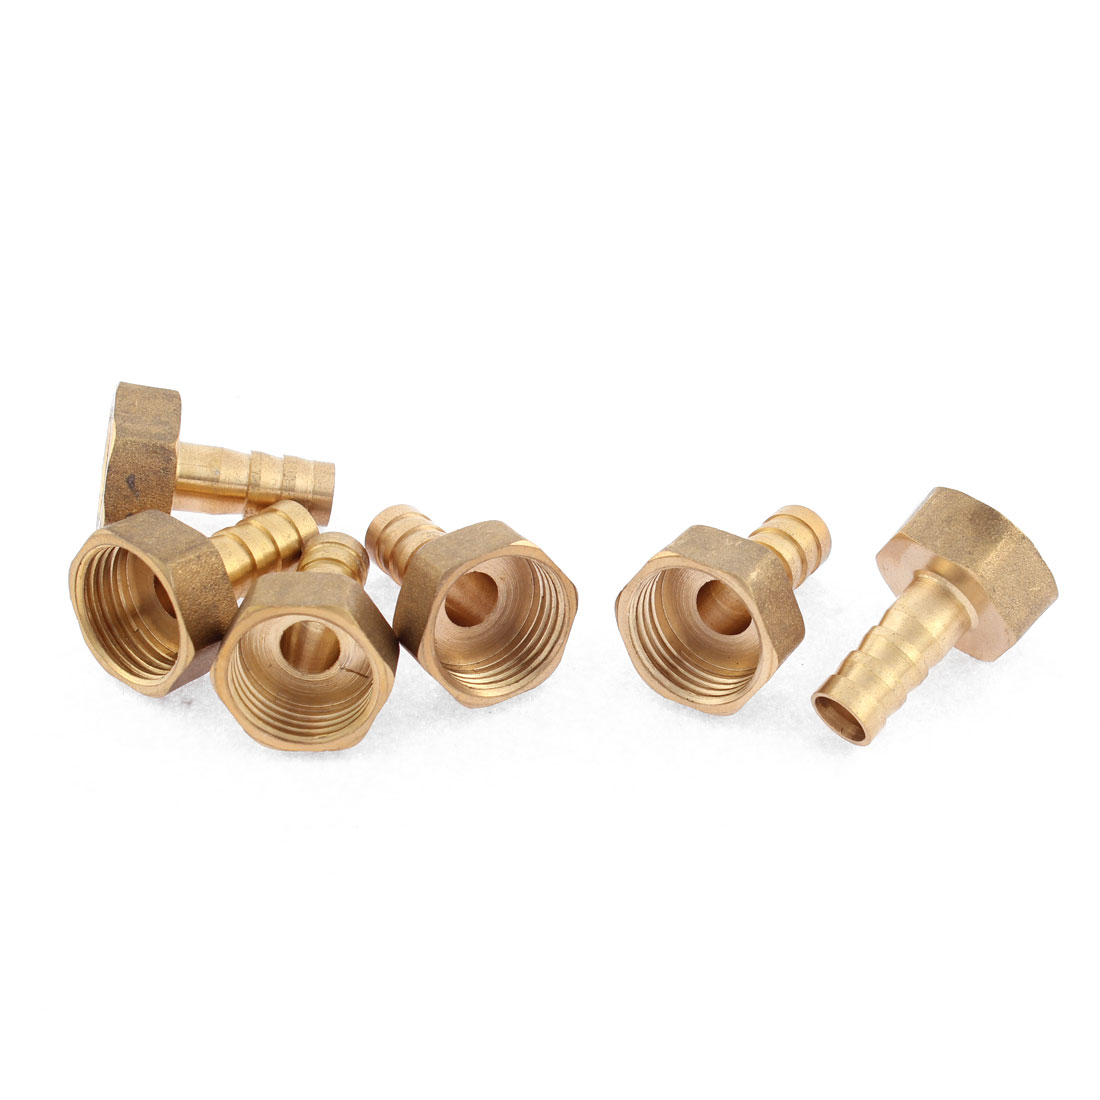 M18 Female Thread to M8 Air Gas Hose Barb Fitting Adapter Coupler 6pcs